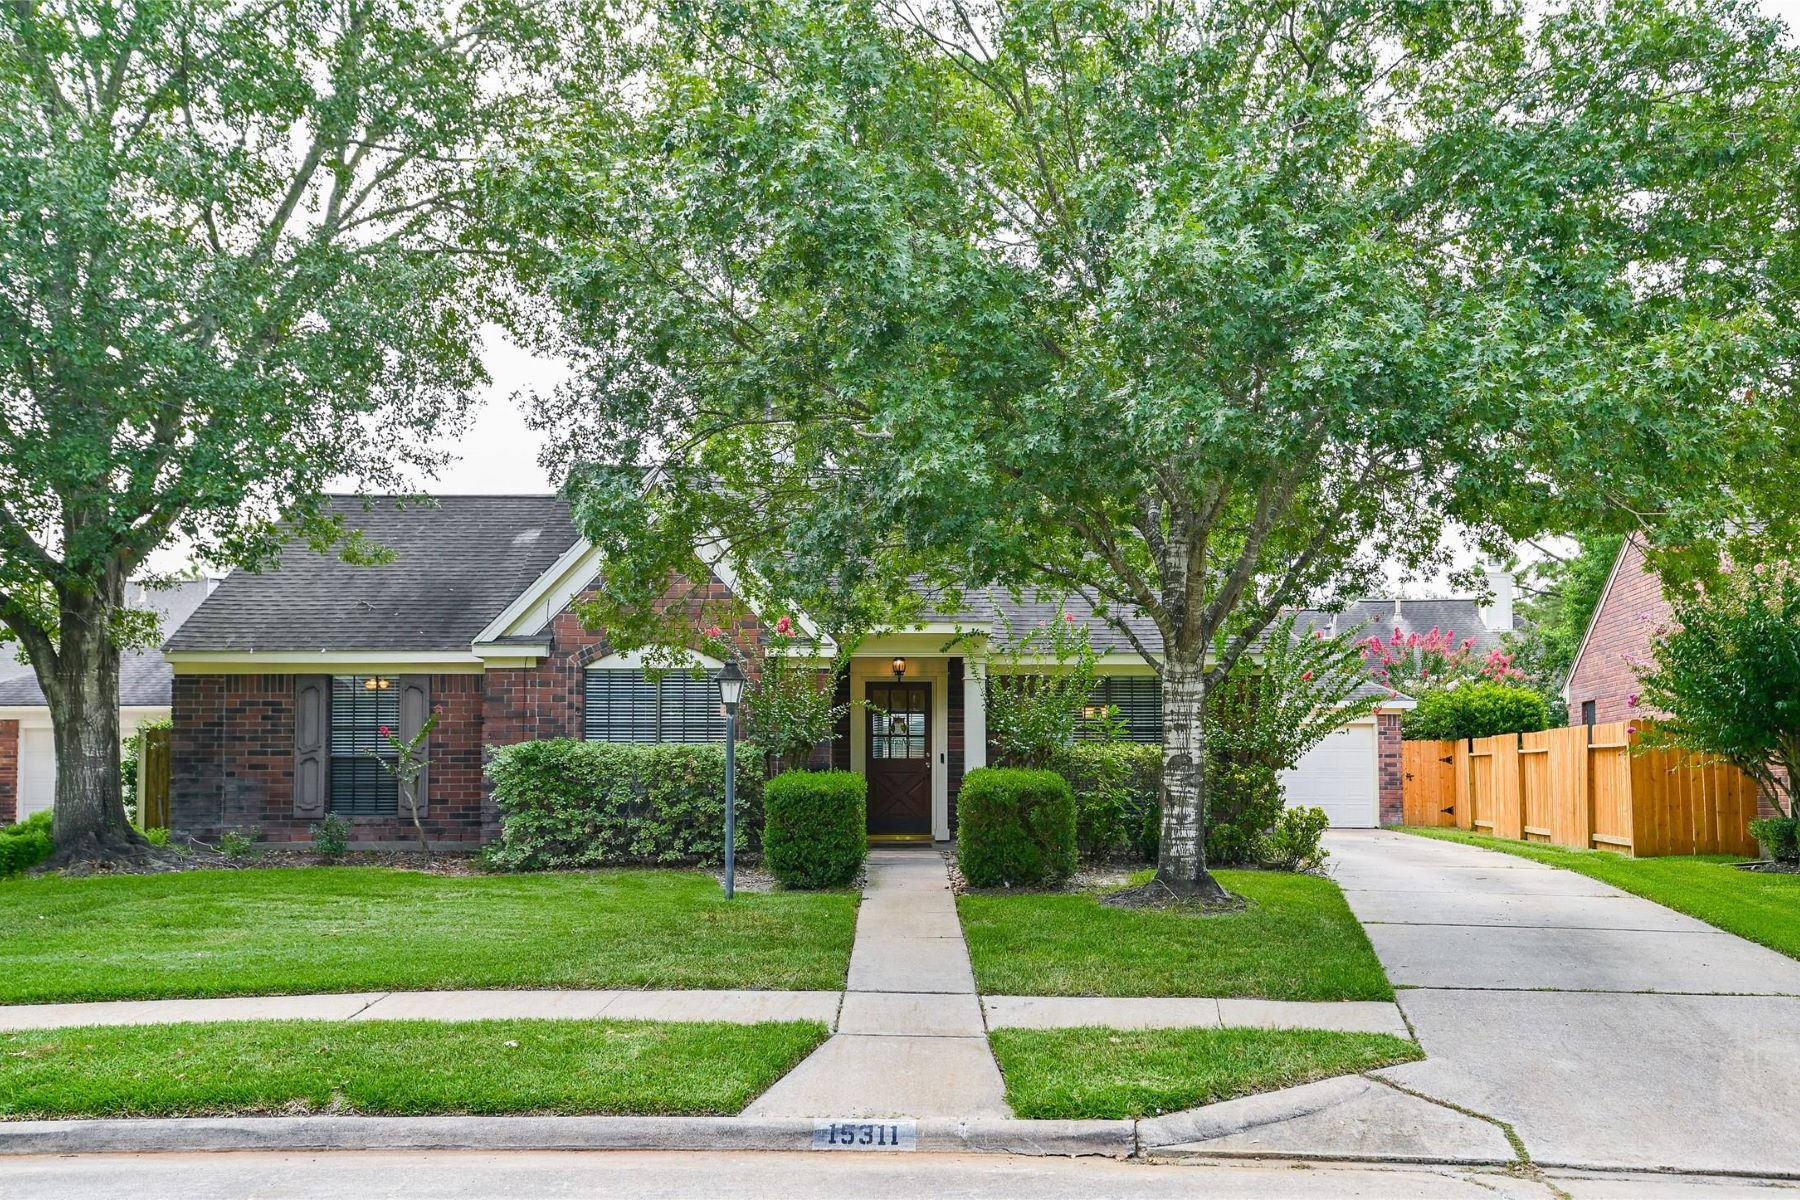 Single Family Homes for Sale at 15311 Evergreen Knoll Lane Cypress, Texas 77433 United States